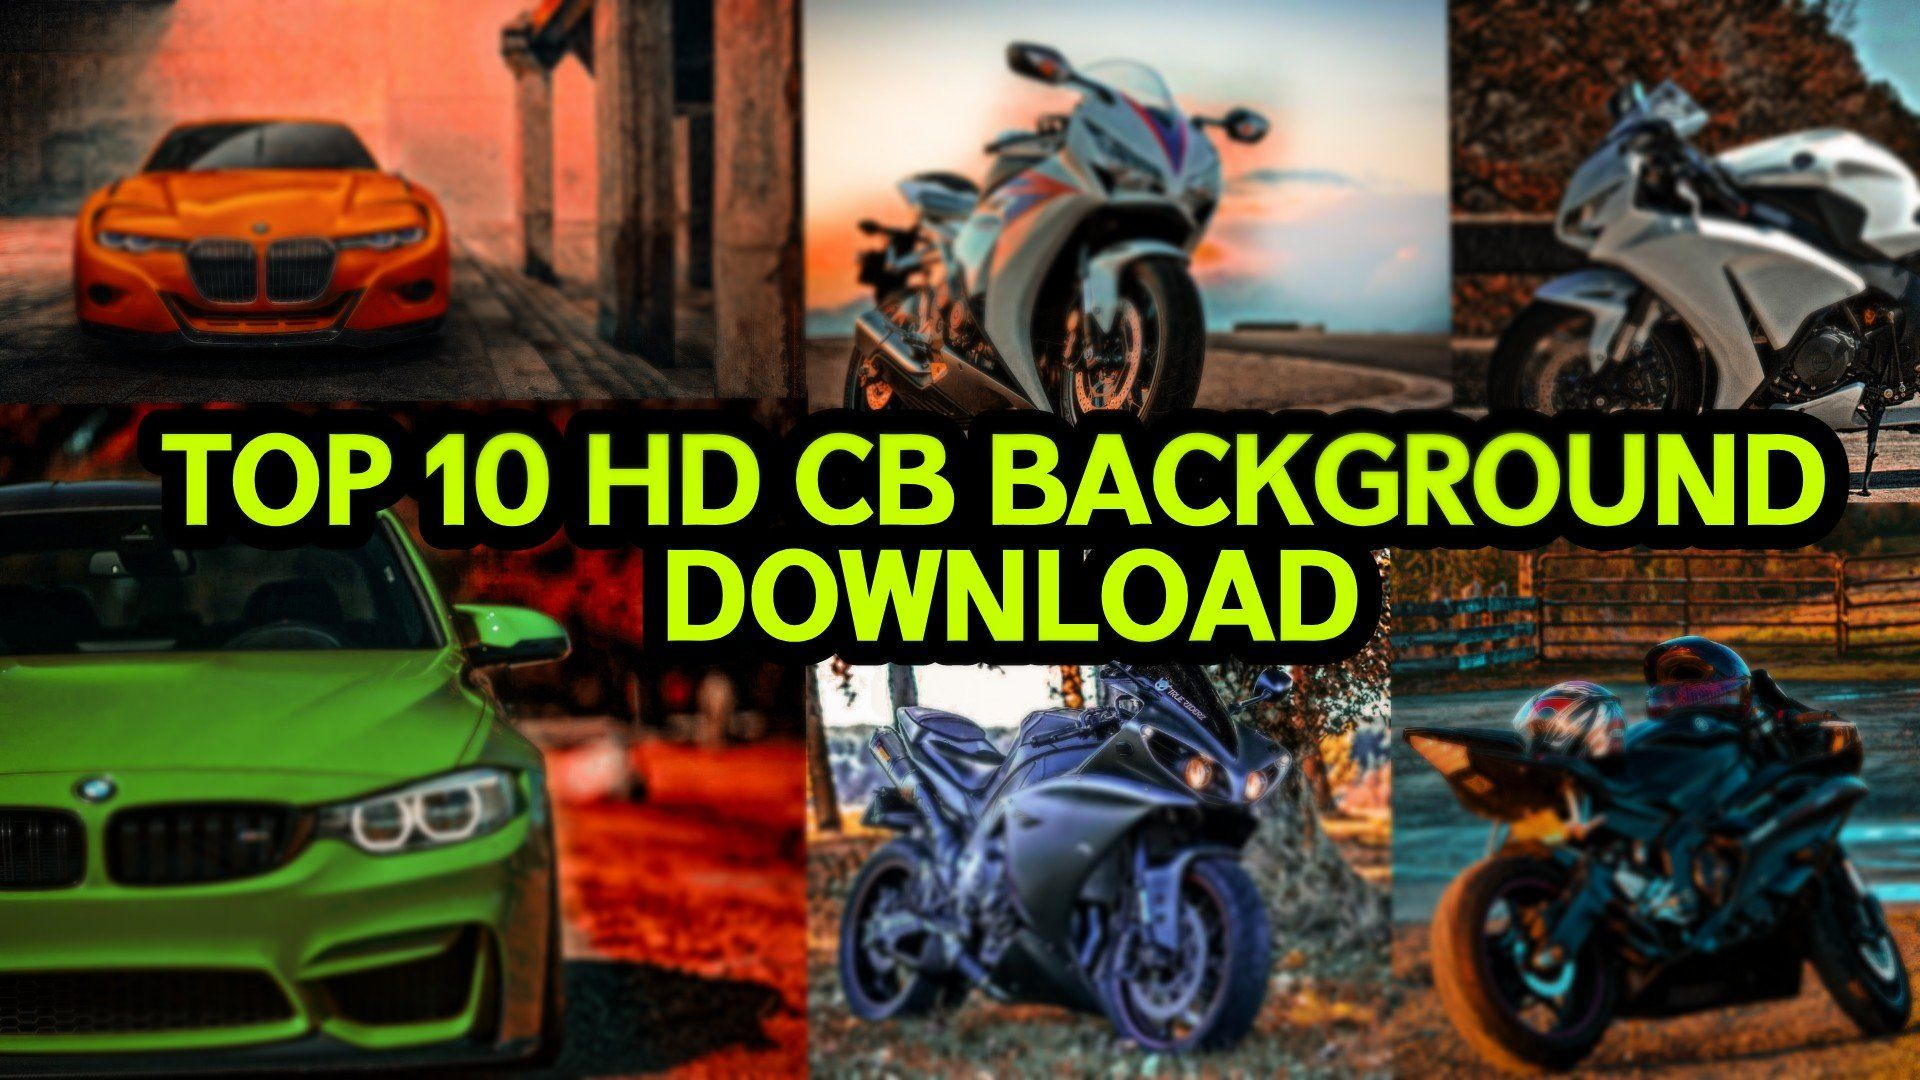 Cb Background Hd Download New Top 10 Cb Background Download